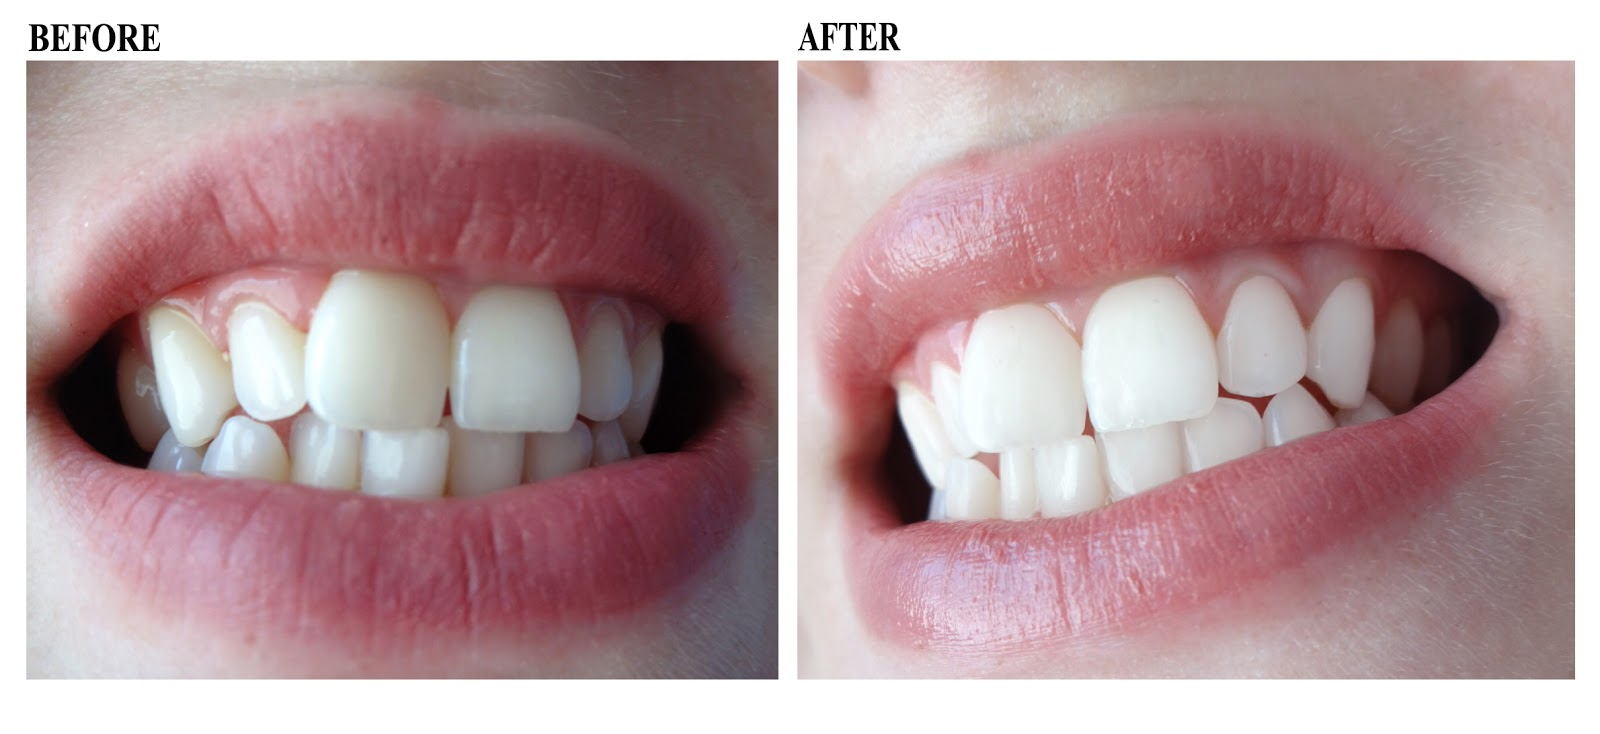 Teeth Whitenin Before and After